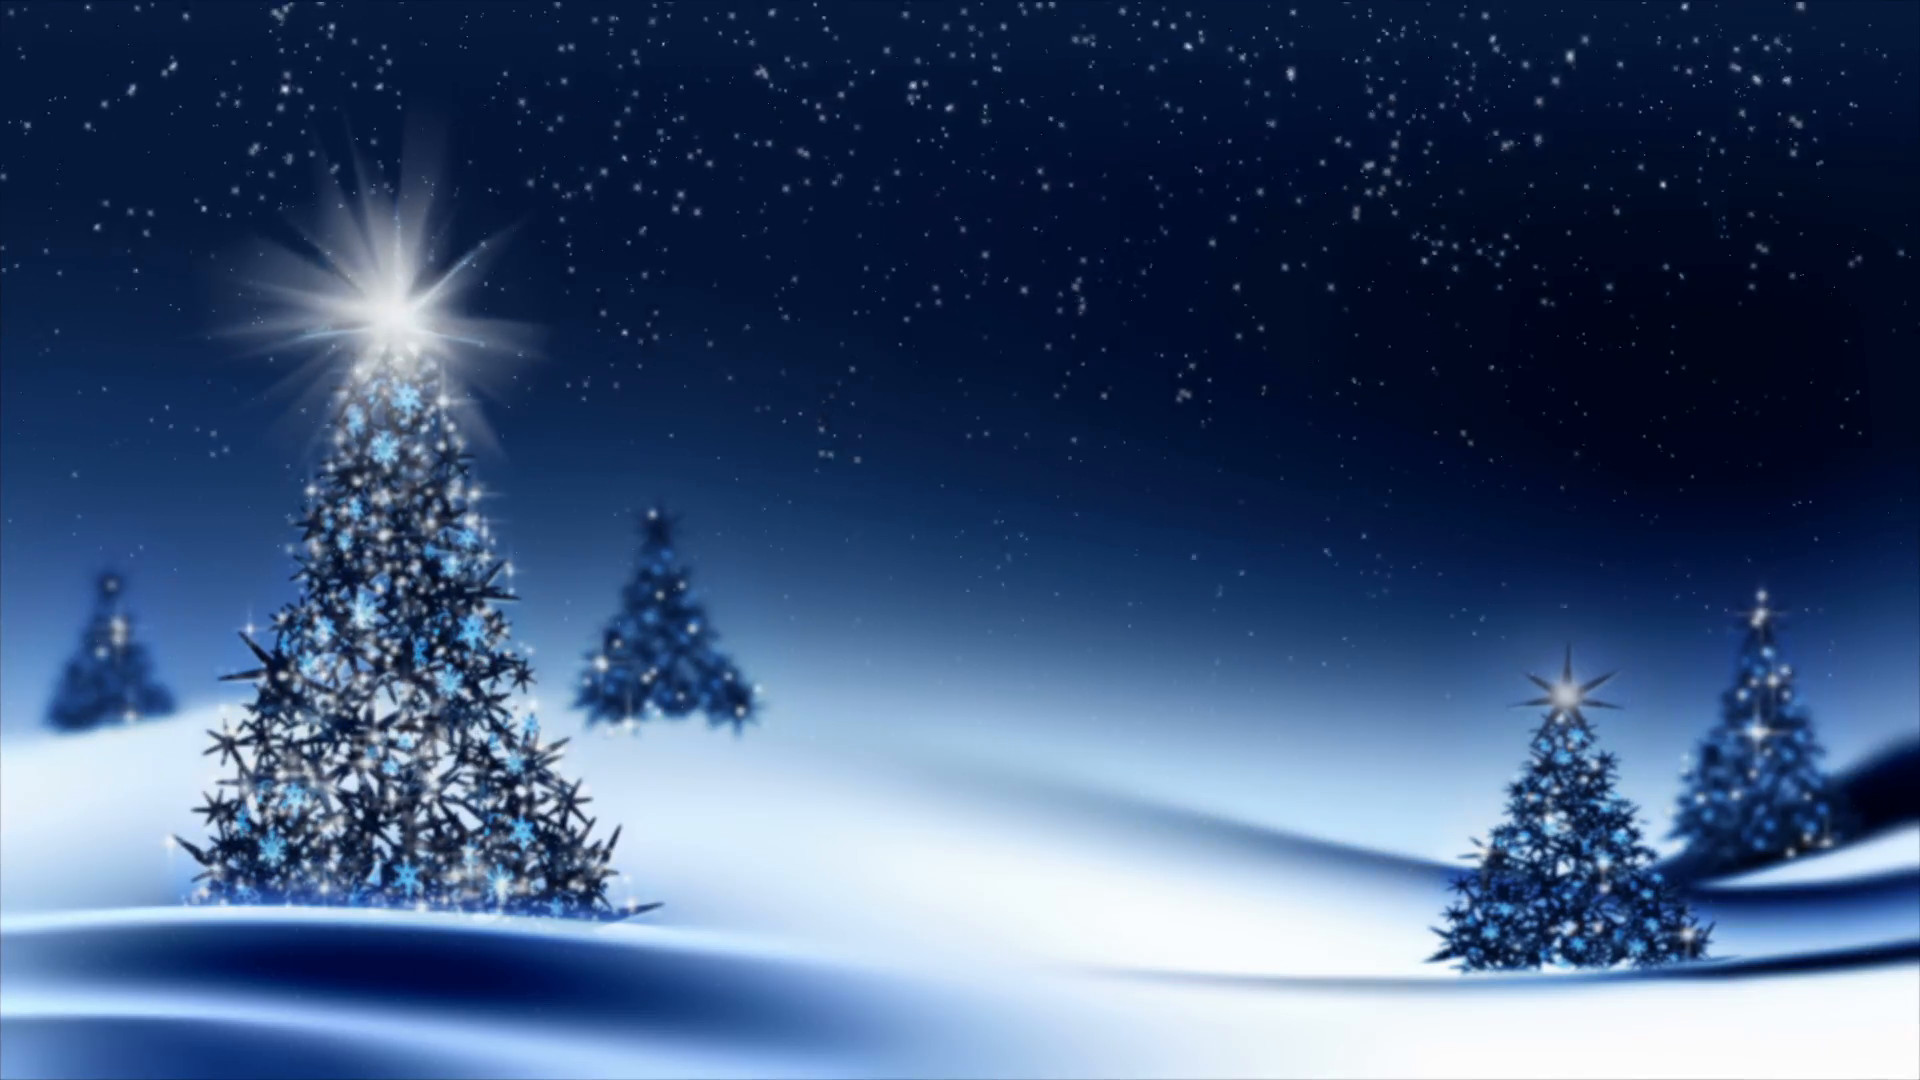 Animated Christmas Wallpaper Windows 7 Free Download Christmas Star Background 183 ①